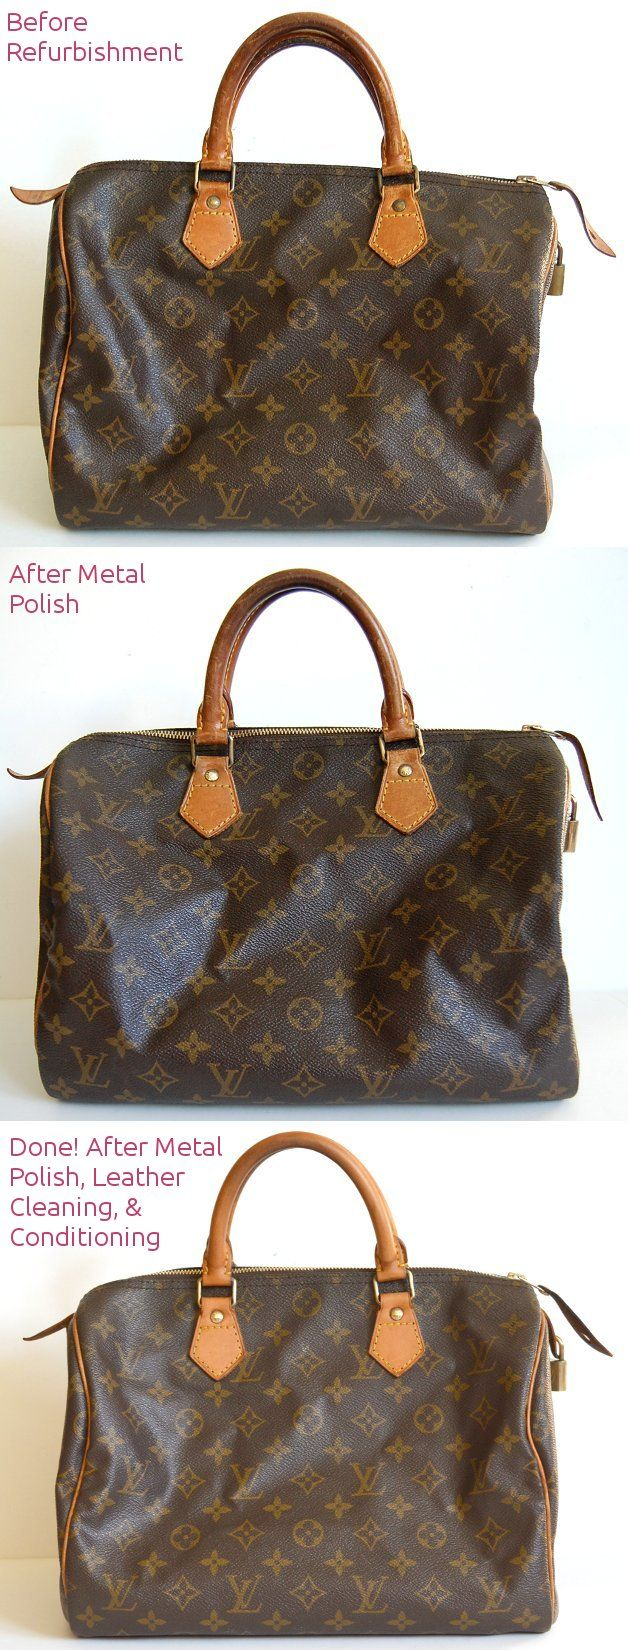 How To Lighten Louis Vuitton Leather Make Metal Shiny Clean Refurbish Newer Look